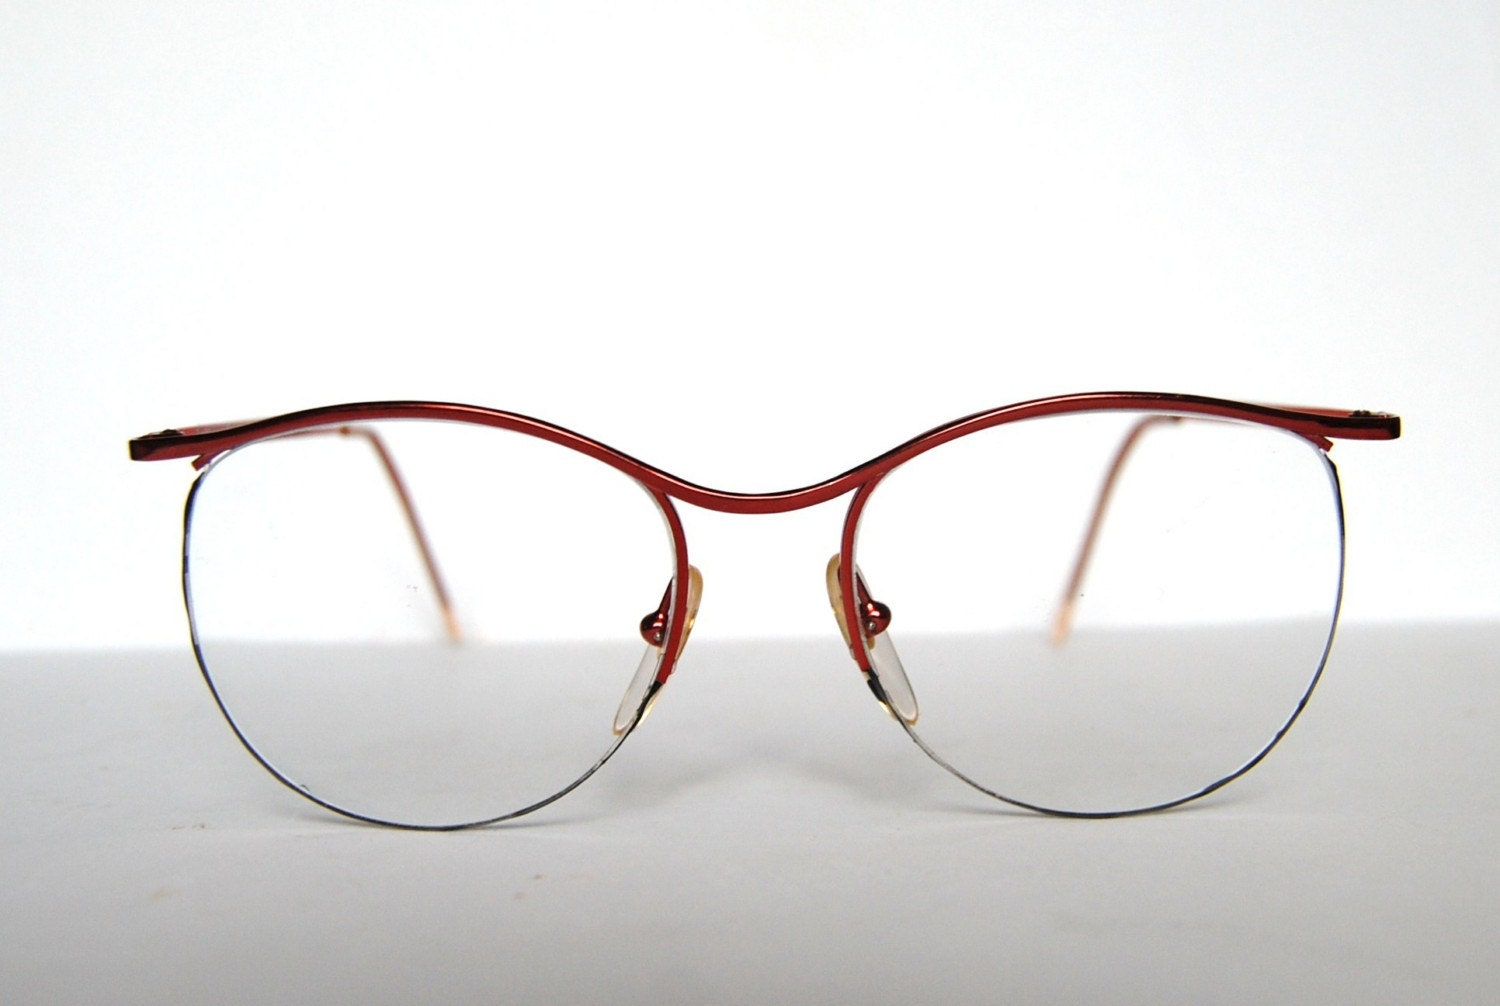 Vintage eyeglasses sunglasses in red metal frame by RetroEyewear from etsy.com